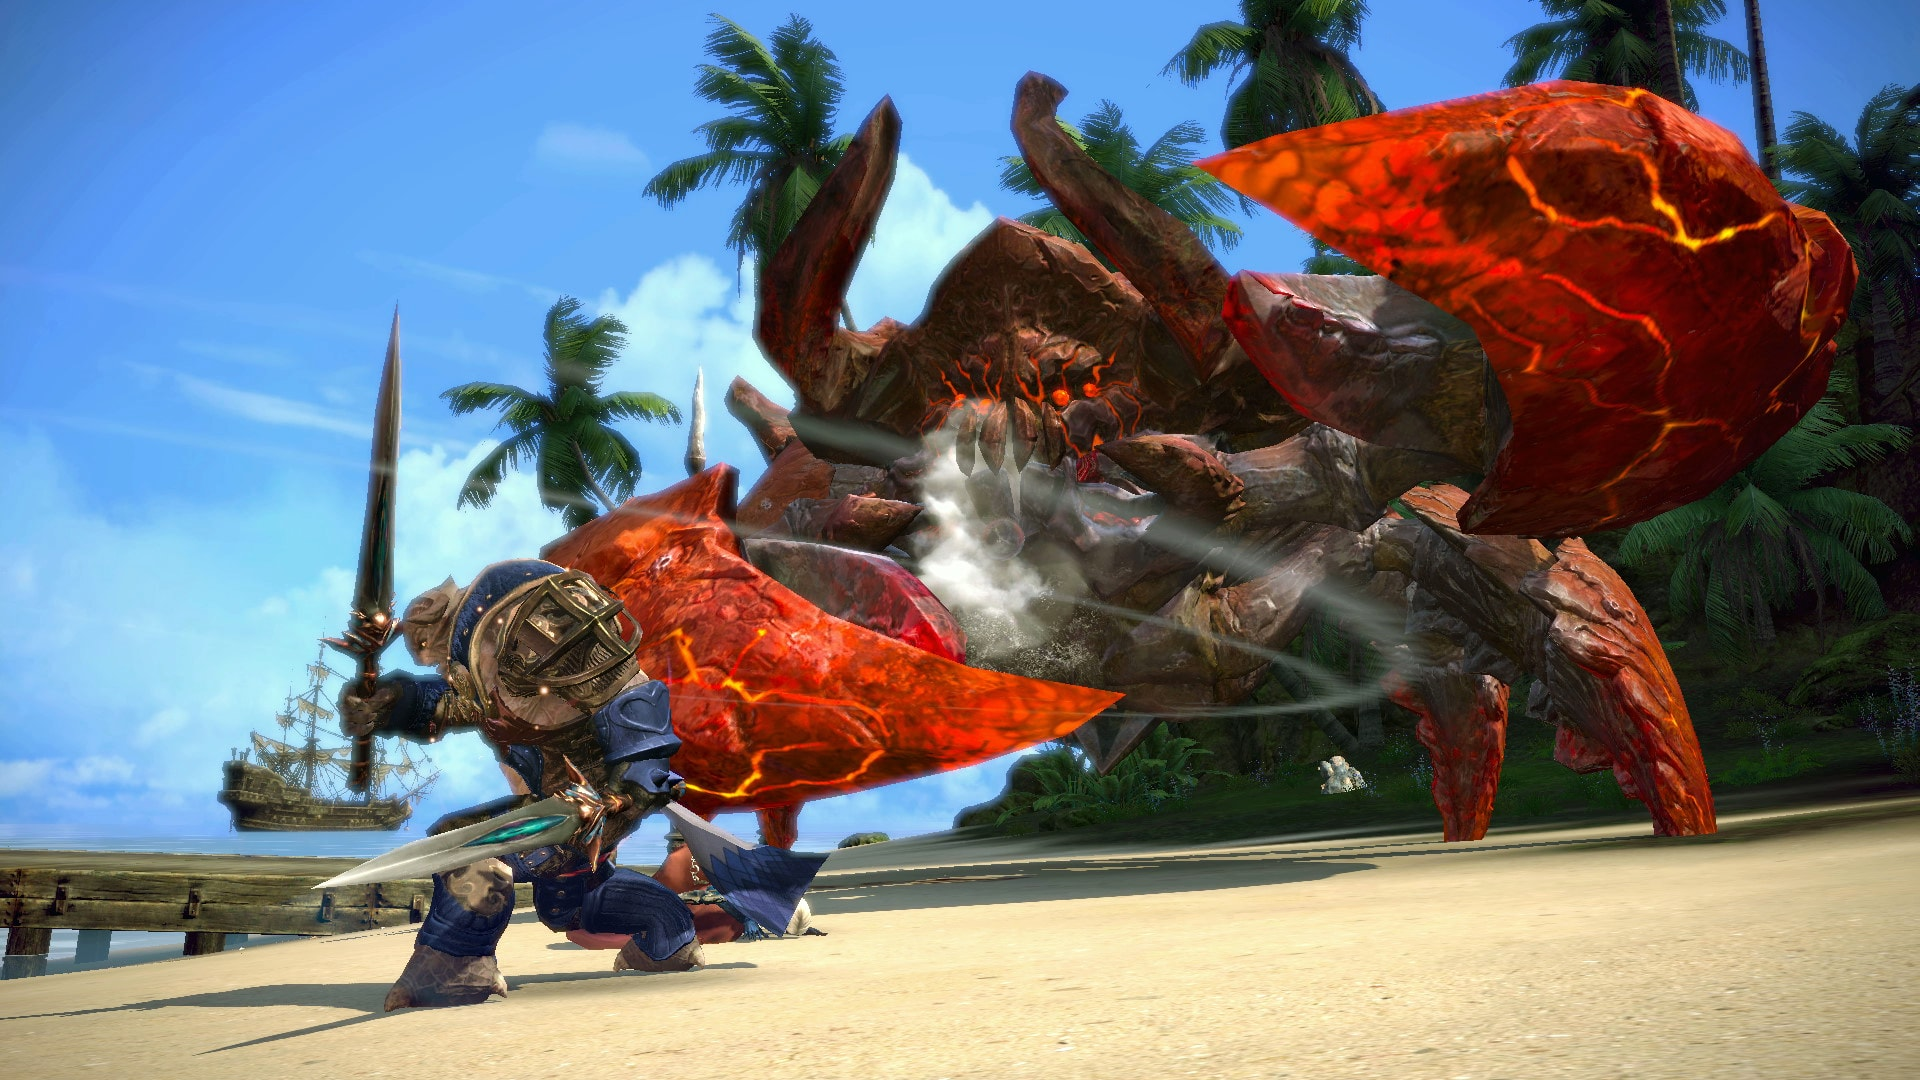 Tera. Giant crab fight